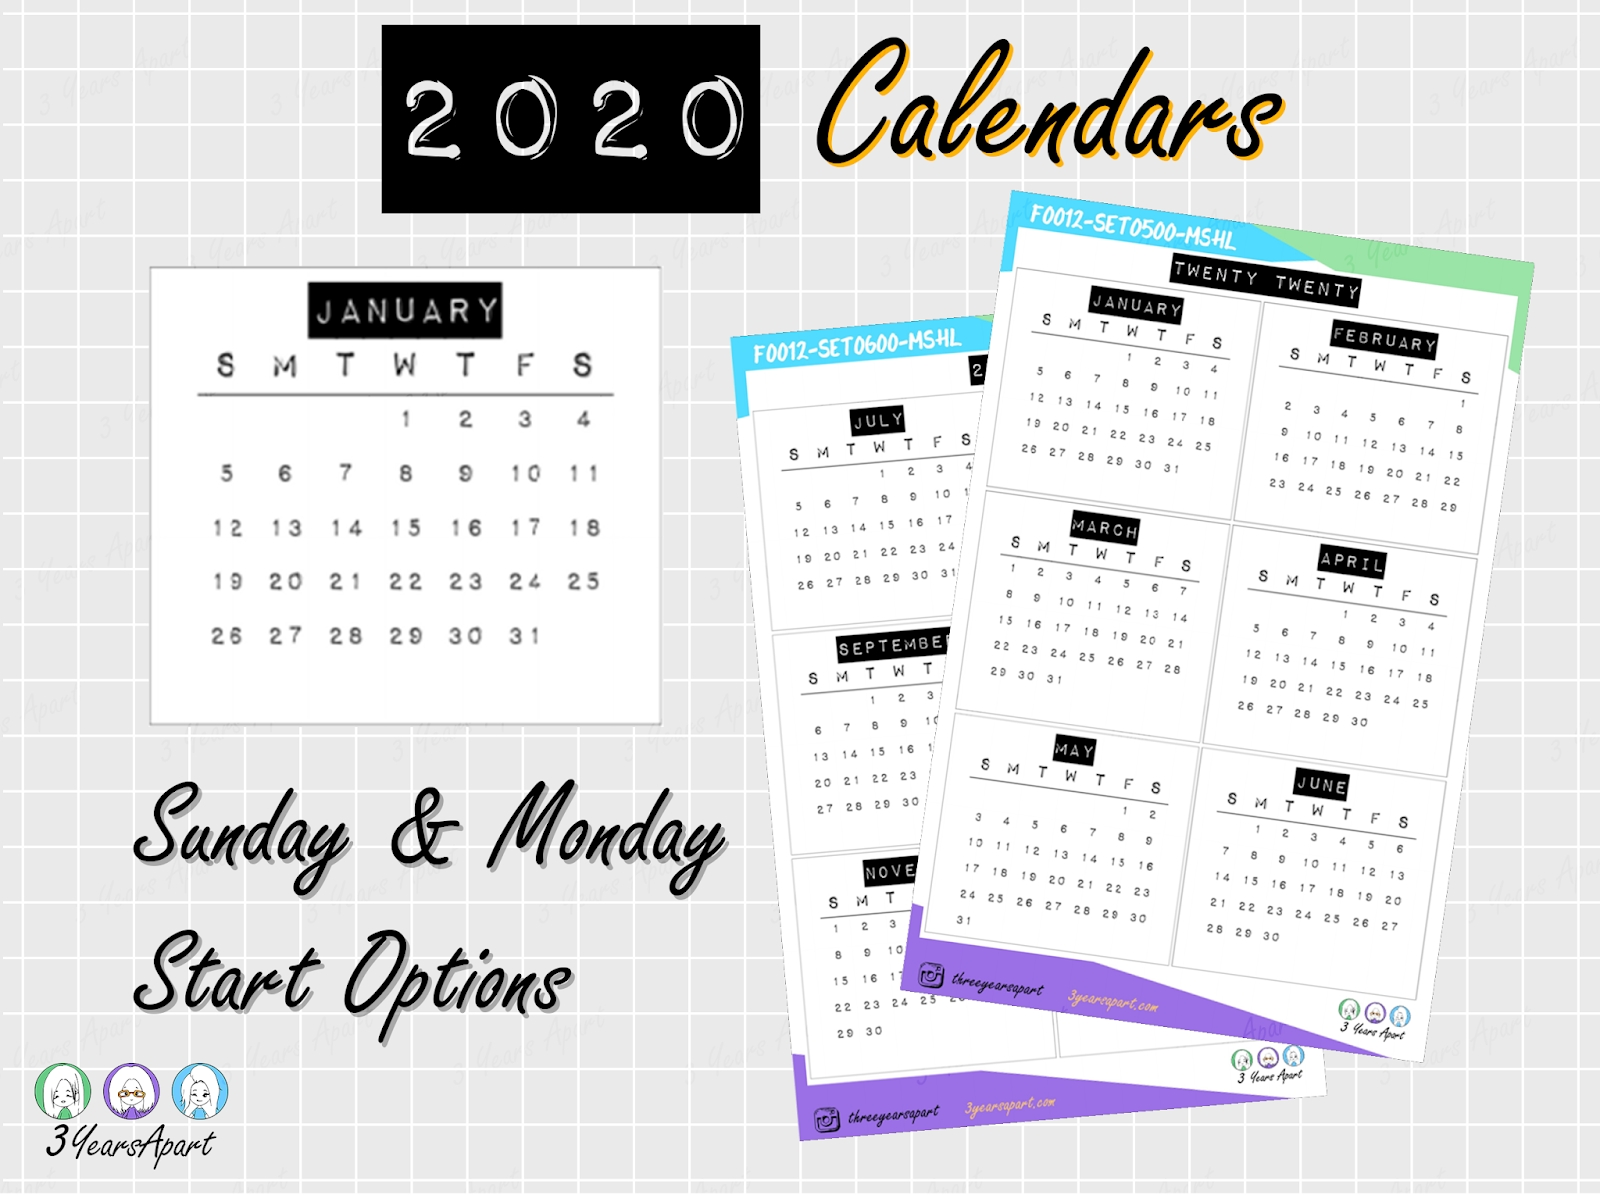 2020 Yearly Calendar Free Printable | Bullet Journal And in At A Glance Downloadable 2020 Calendar